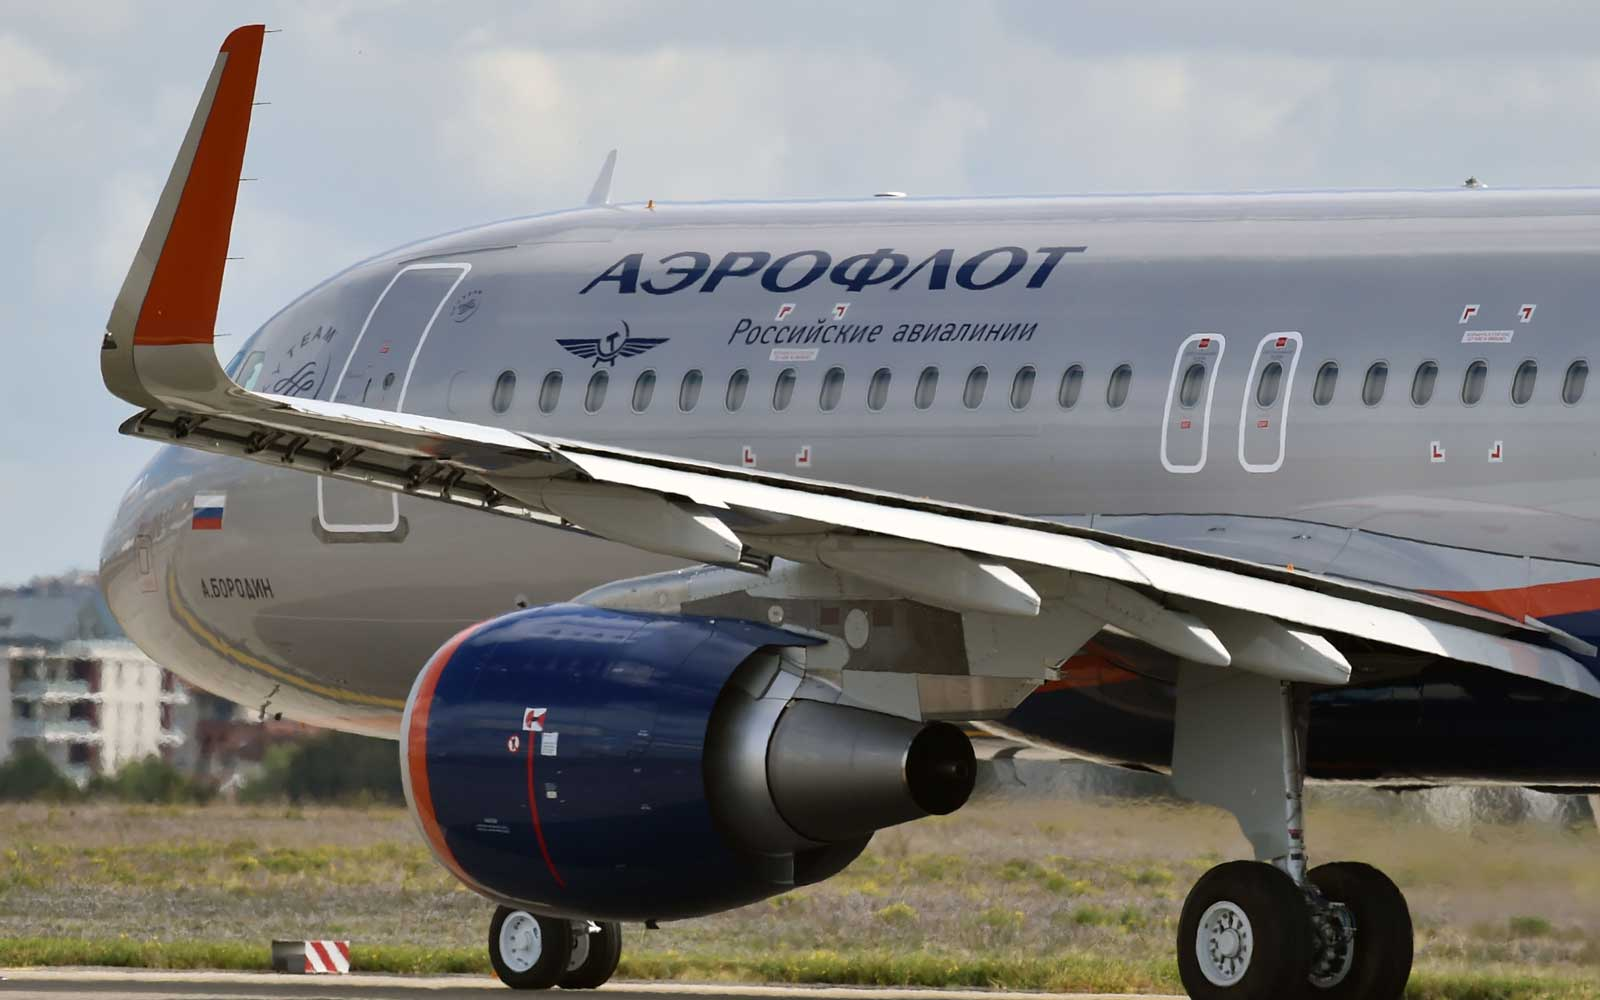 Portable Phone Charger Causes Fire and Emergency Evacuation on Plane